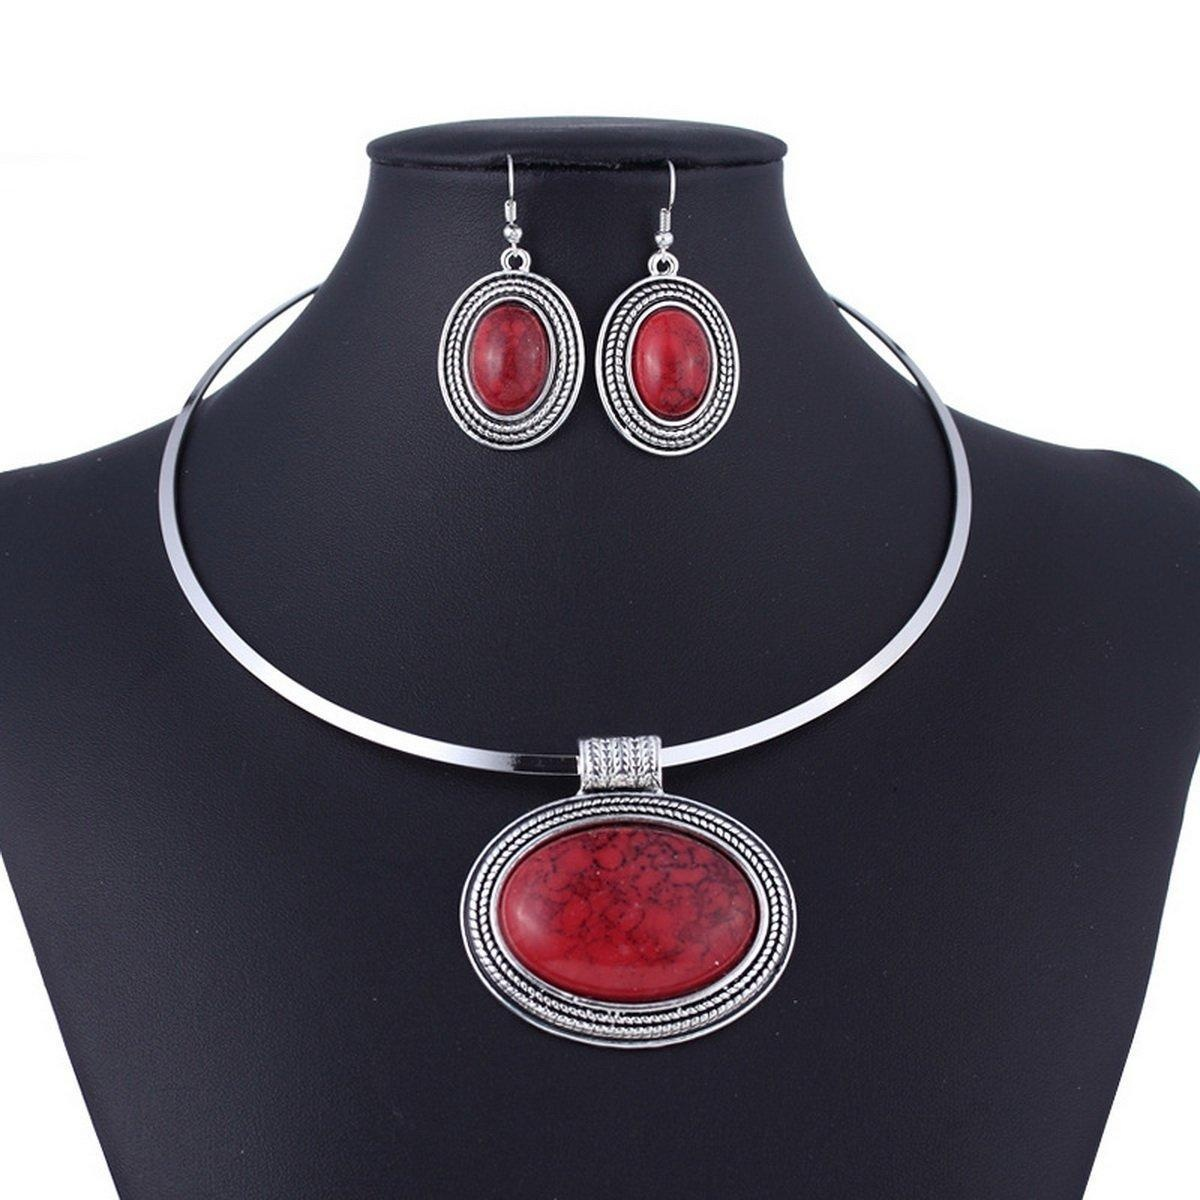 ARICO Round Collar Necklace Set Earrings Turquoise Jewelry Set Red Natural Stone Jewelry Set NB288